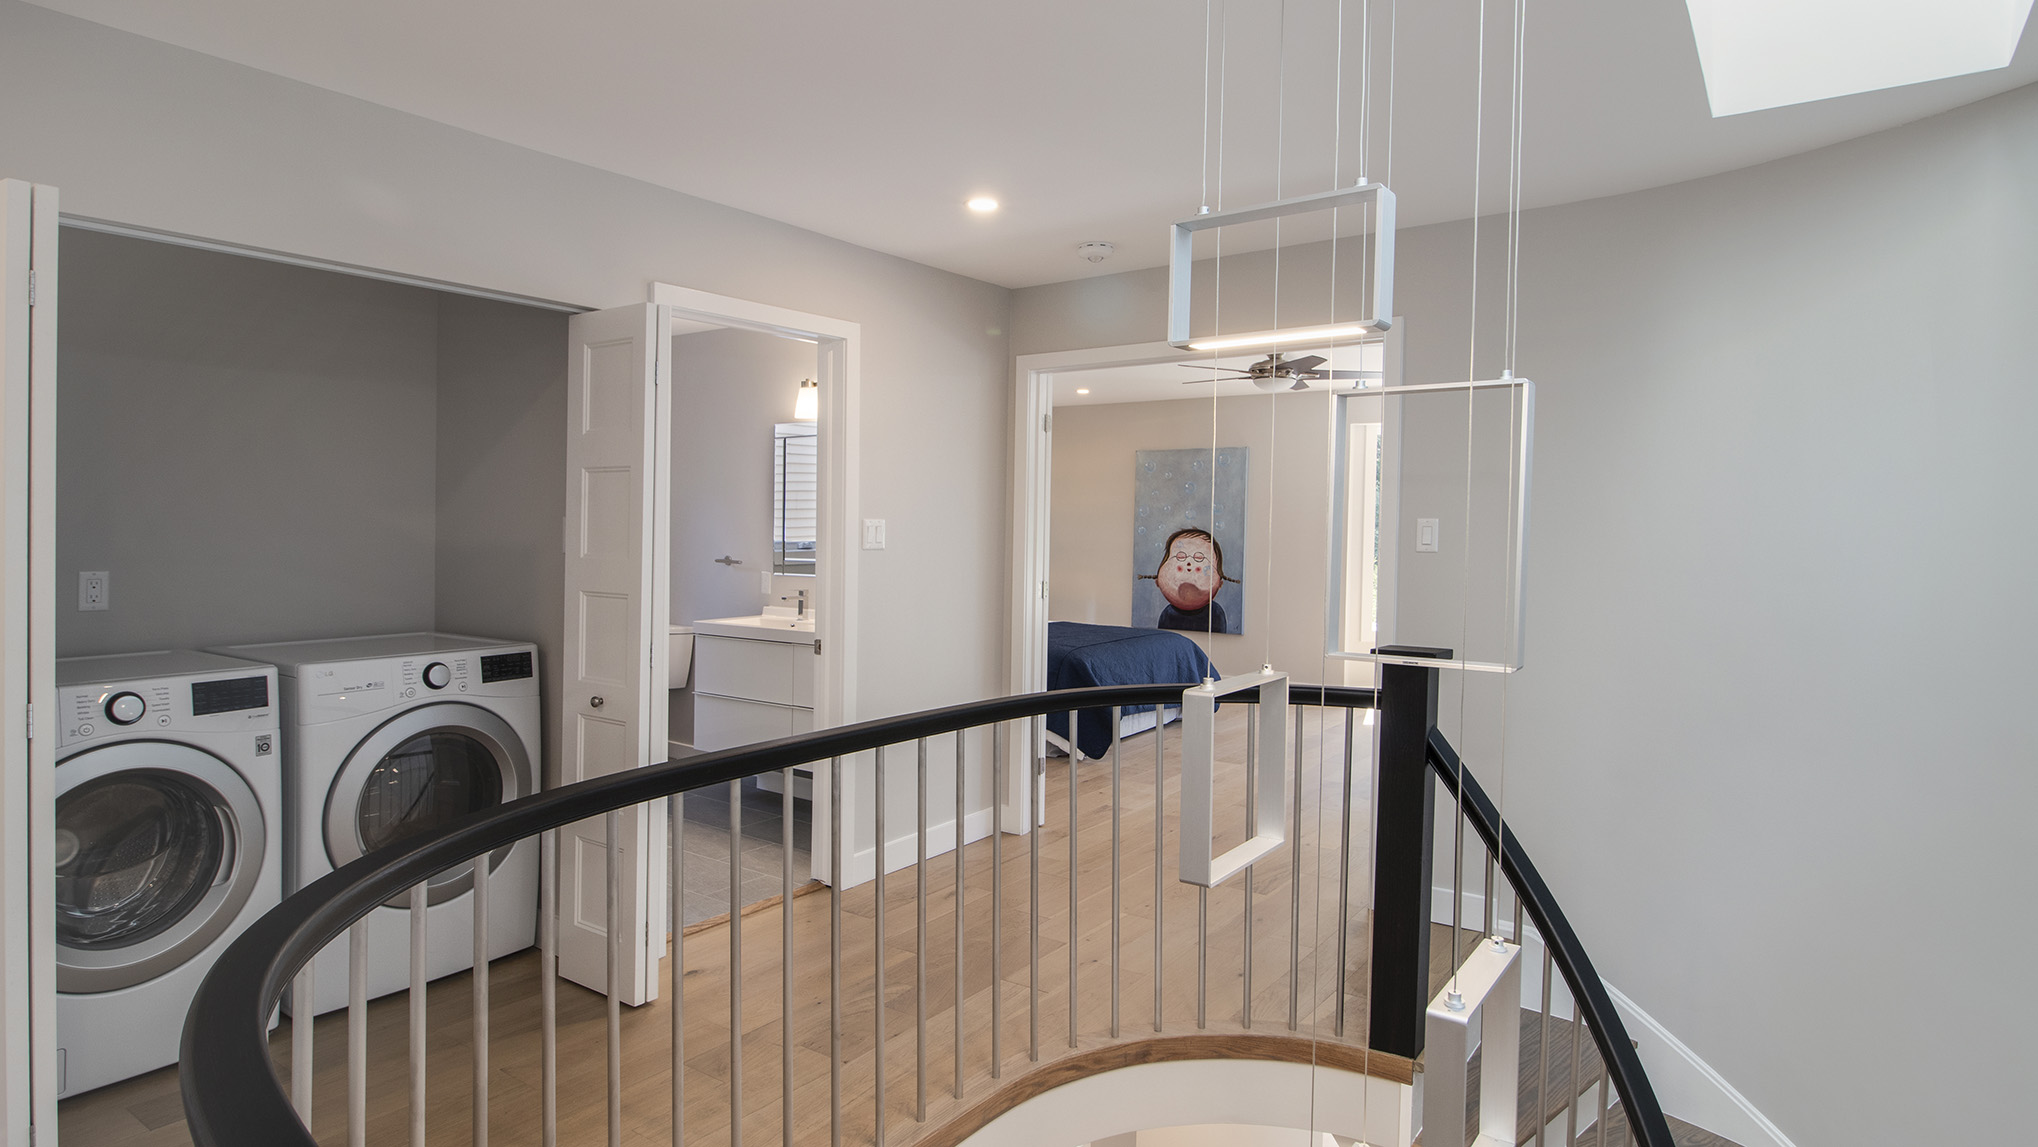 Custom Handrail and Spindles, Gorgeous Modern Light Fixture